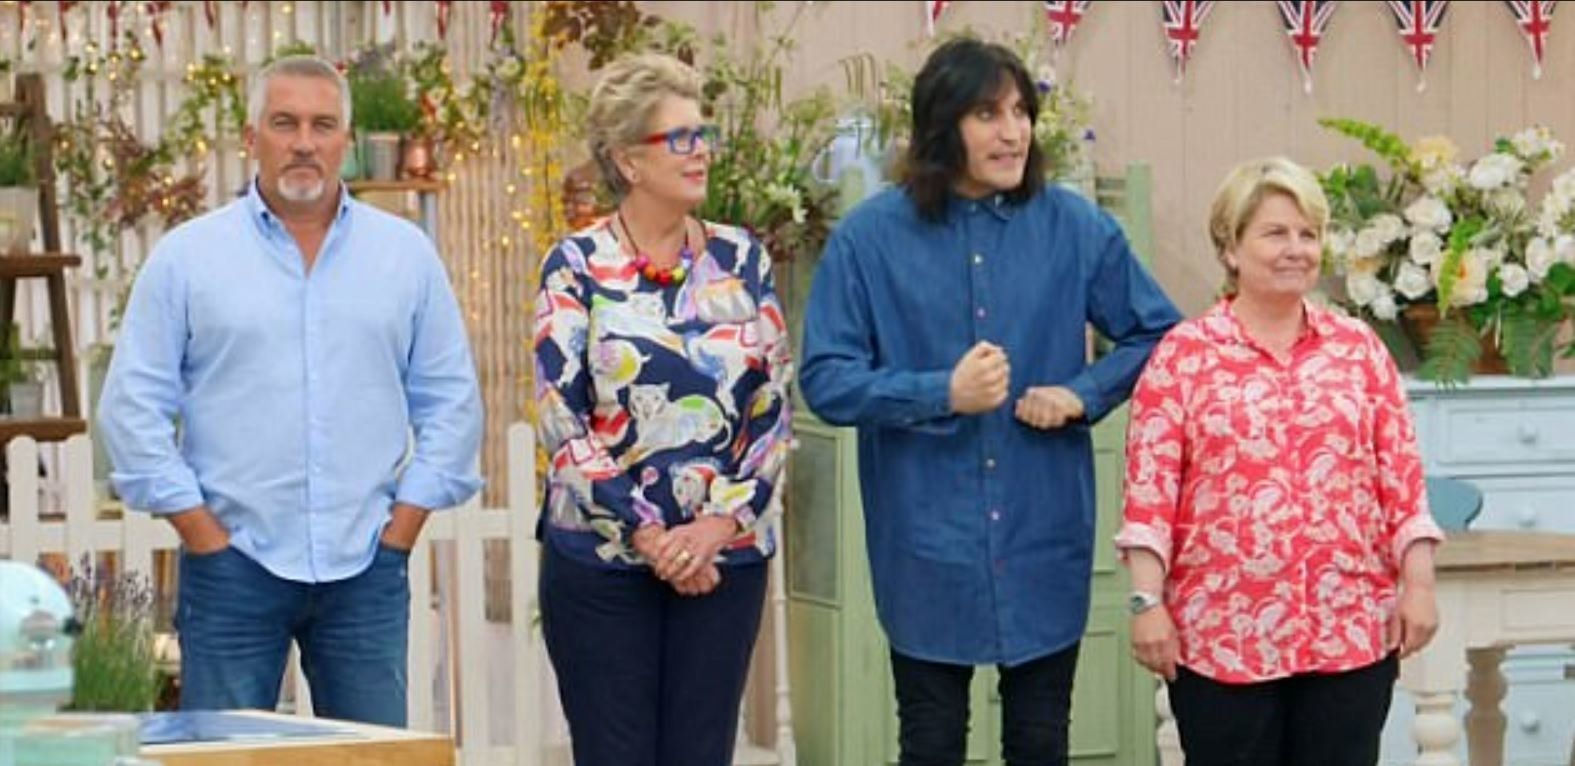 'Bake Off' Viewers Can't Handle The Fact That Everyone's Favourite Has Left The